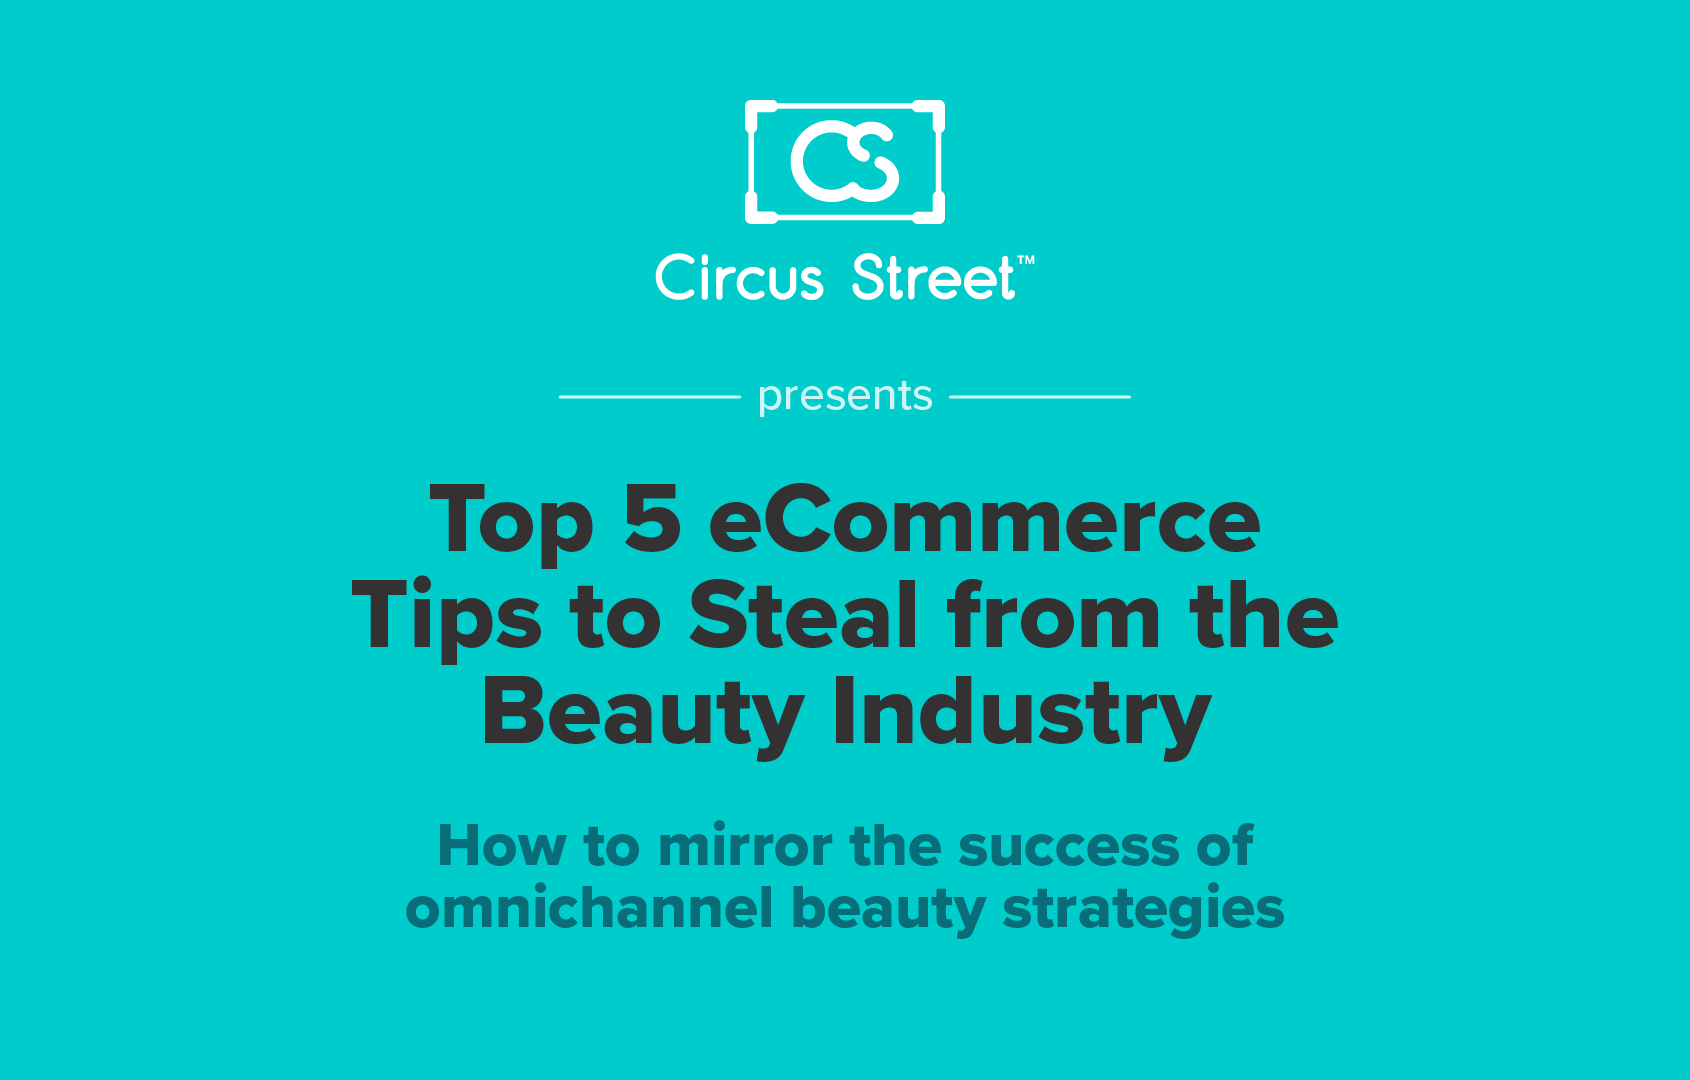 Top 5 eCommerce Tips to Steal from the Beauty Industry